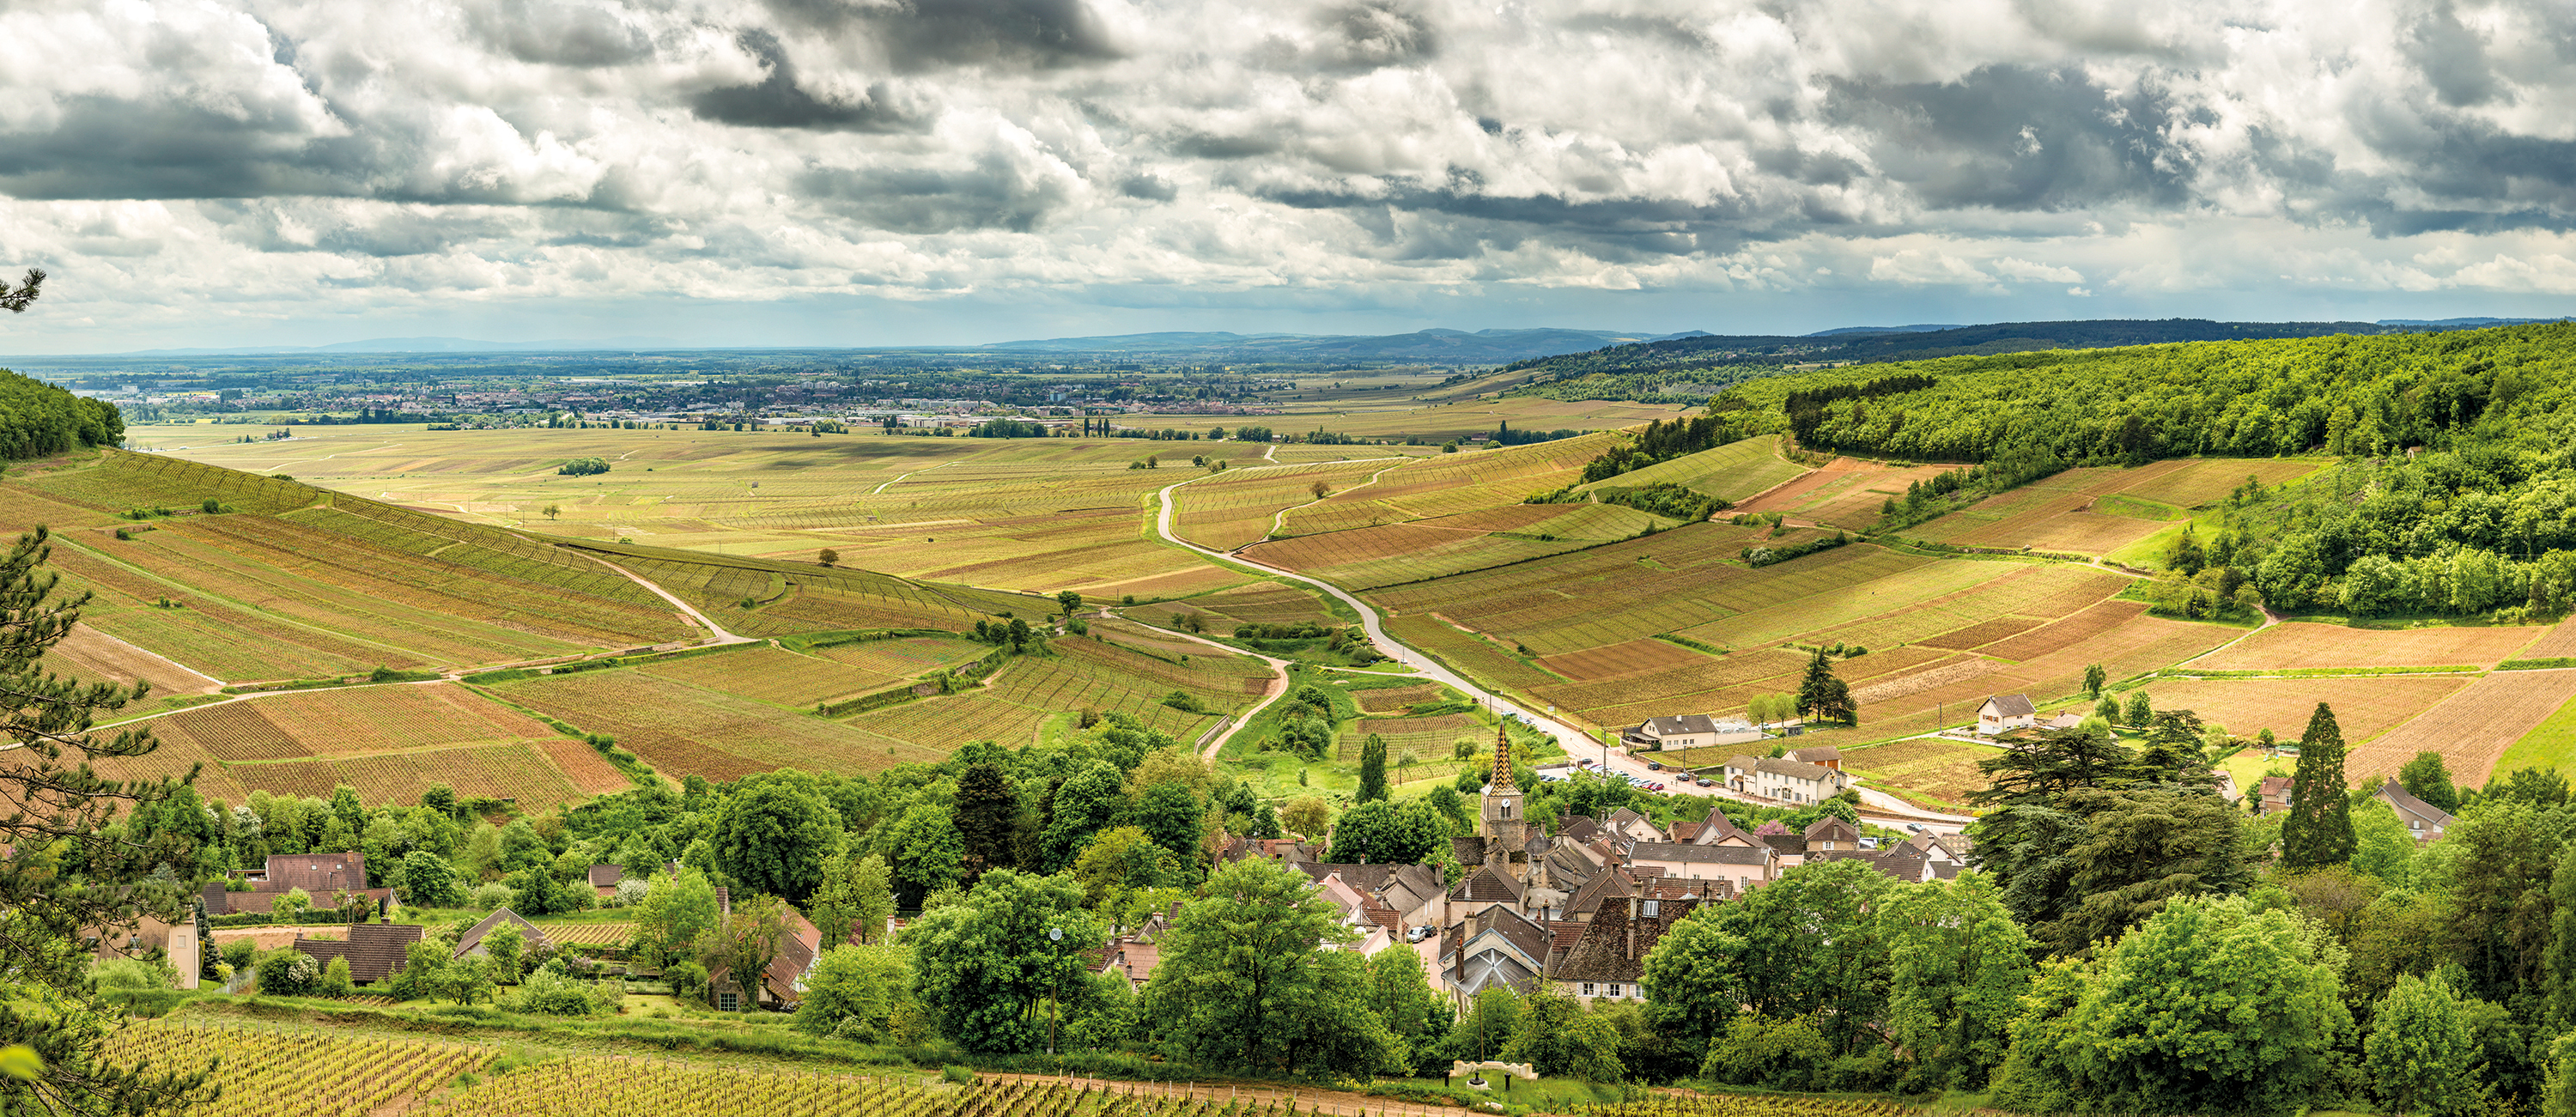 Burgundy village surrounded by vineyards